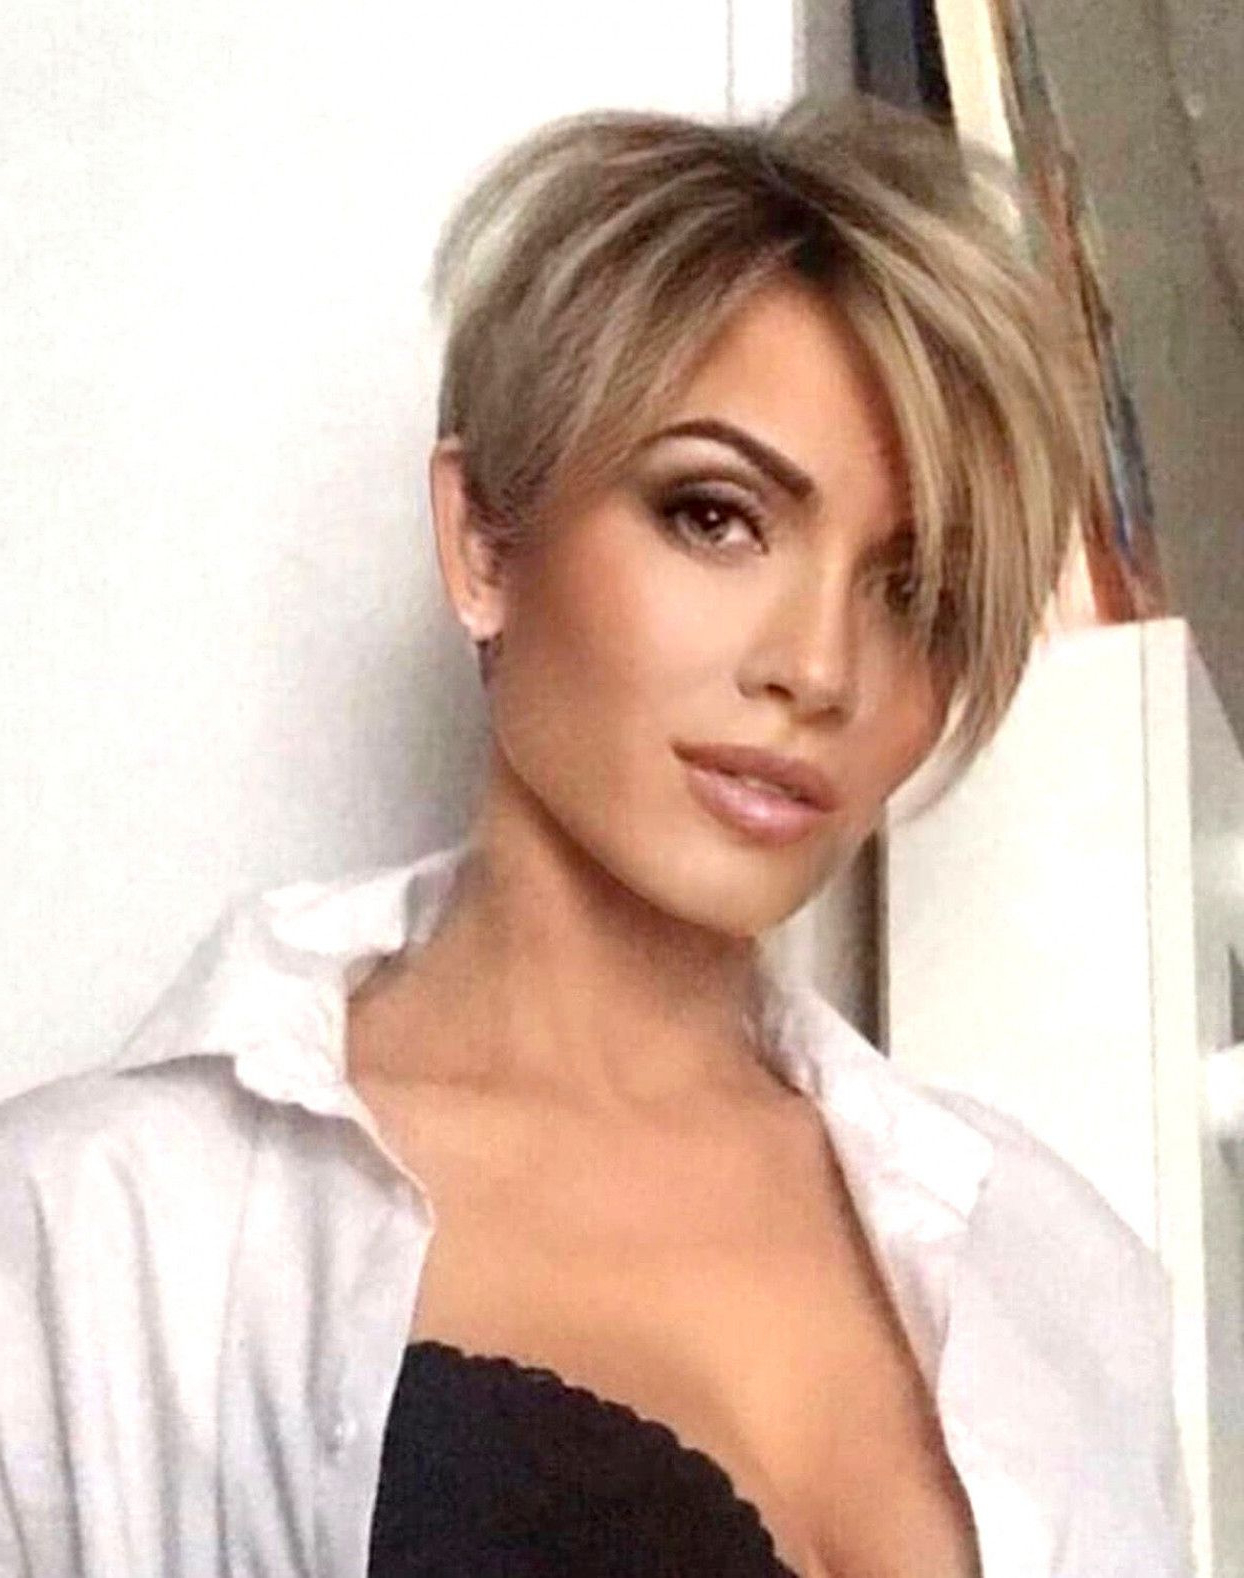 Hairstyles : Pixie Cut For Blonde Hair Splendid Icy Ash Intended For Edgy Ash Blonde Pixie Haircuts (View 14 of 20)